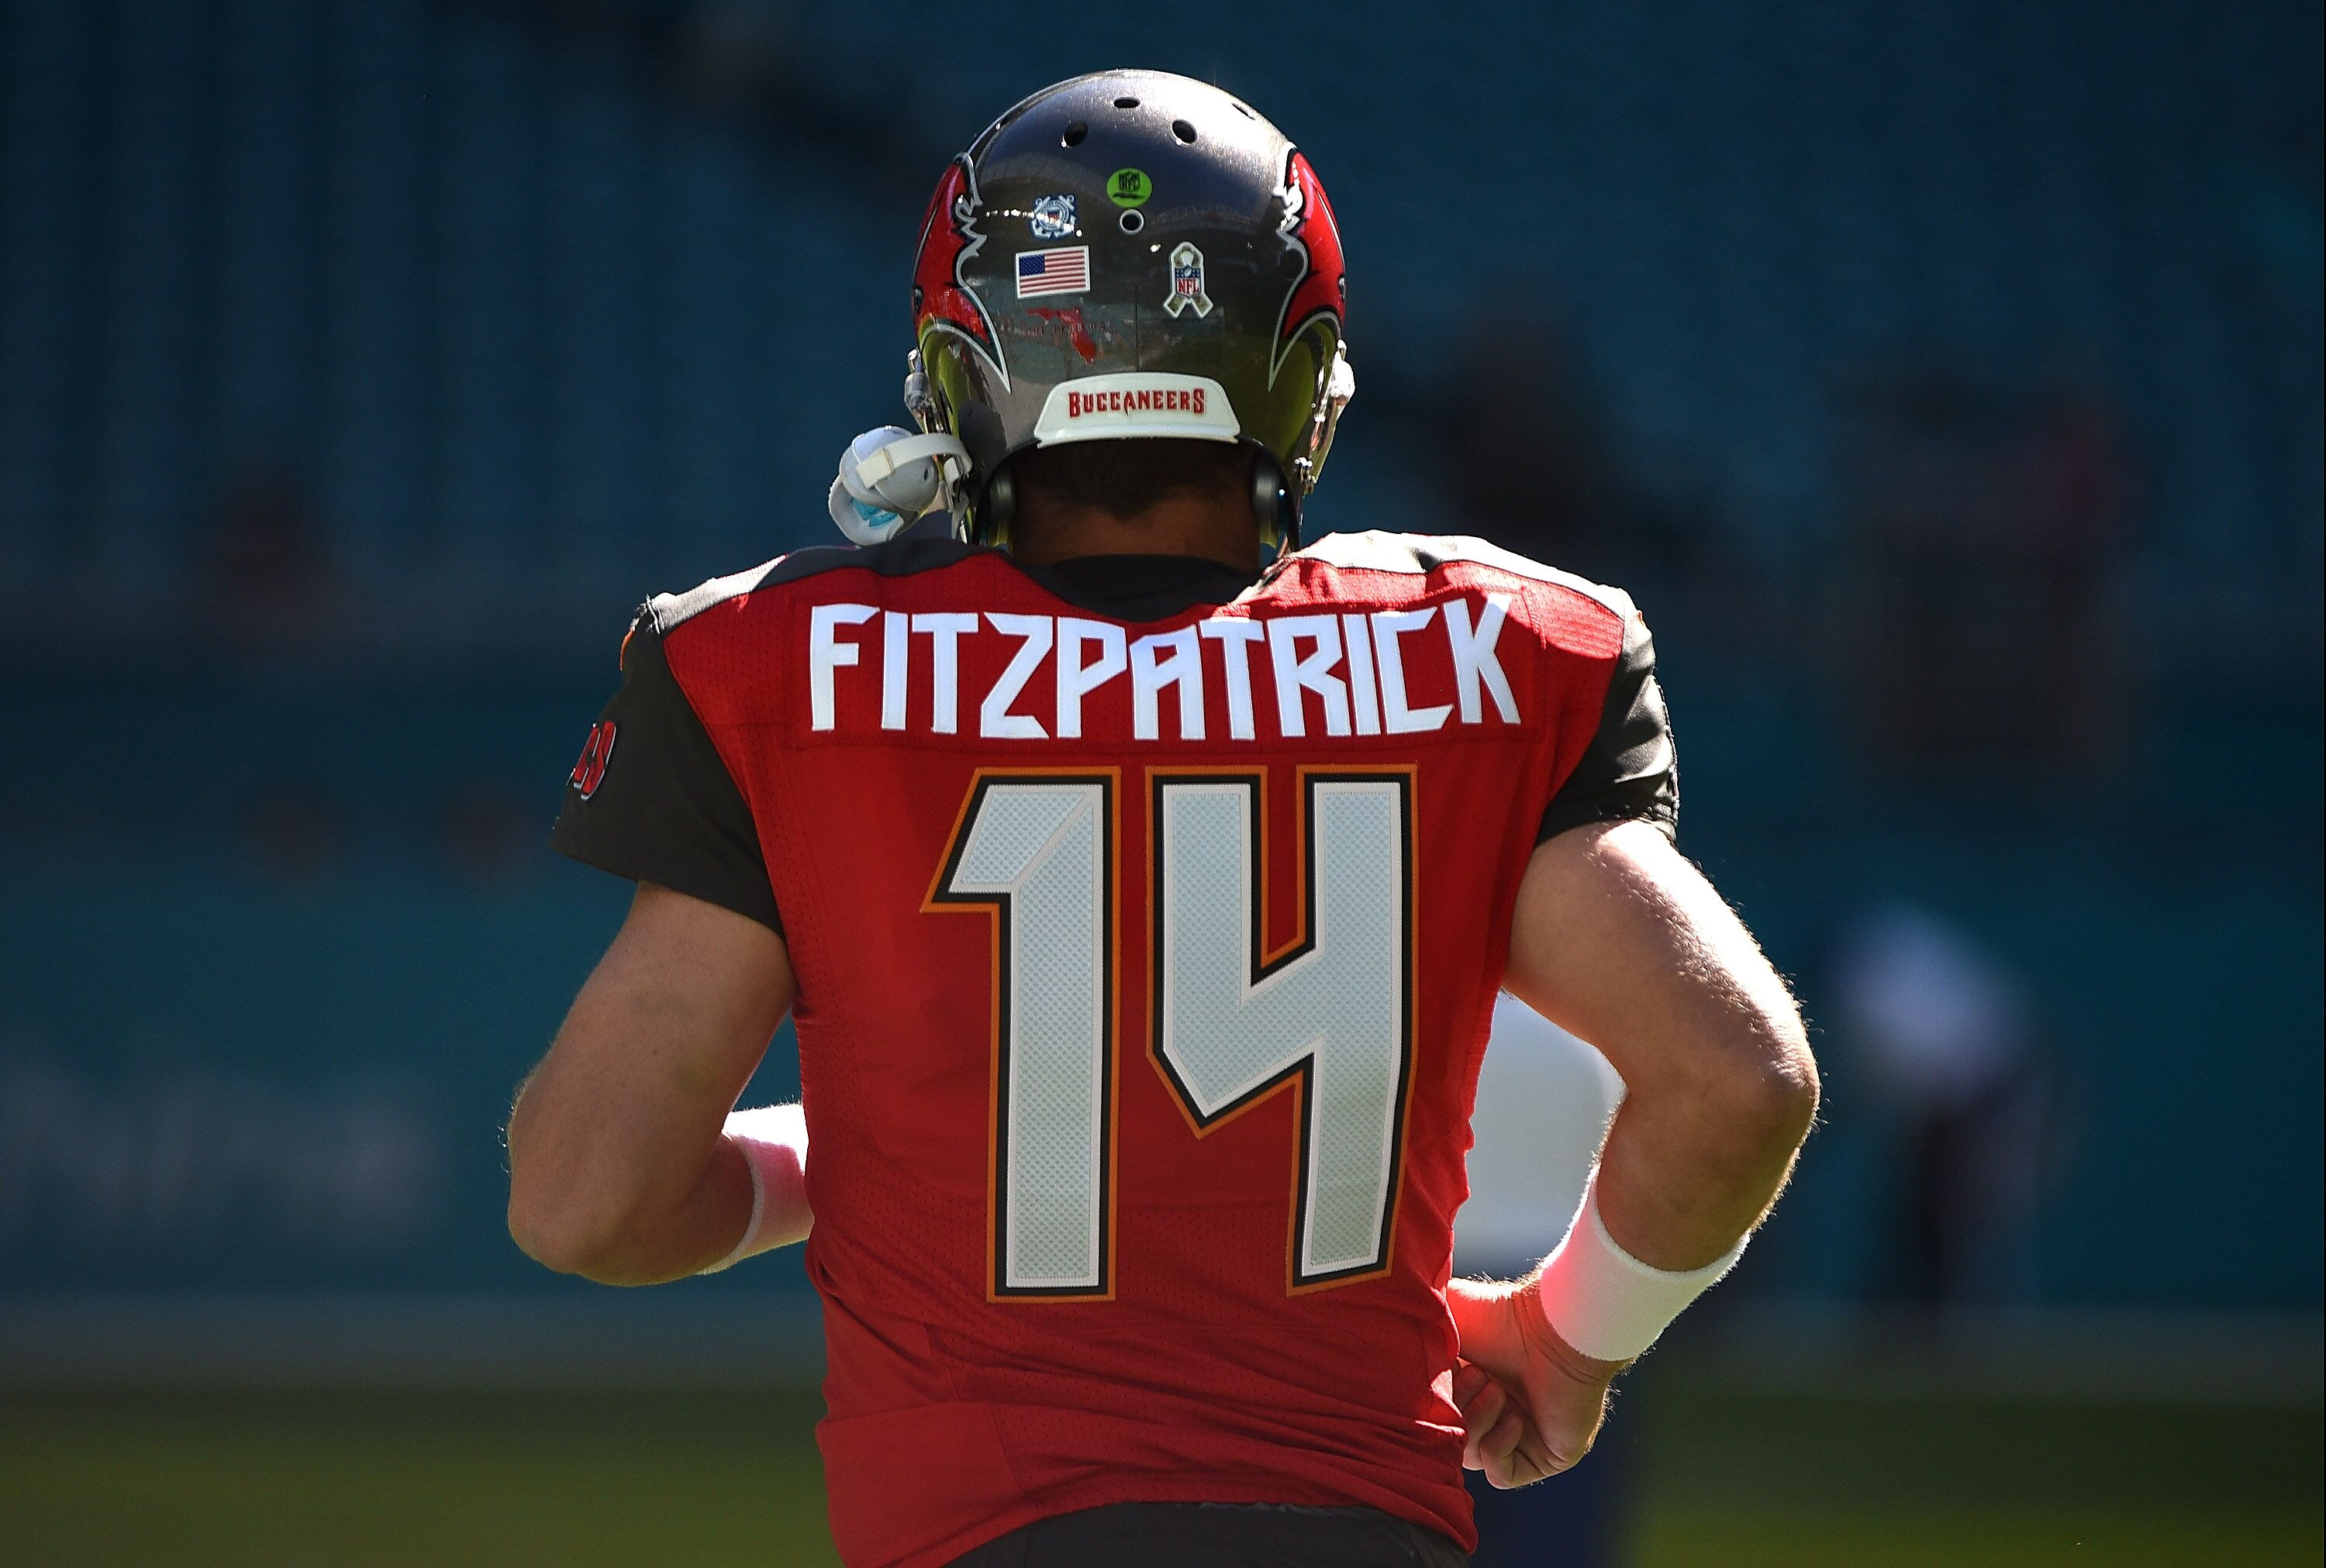 66a835bfb22 Tampa Bay Buccaneers: New confidence in Ryan Fitzpatrick for 2018